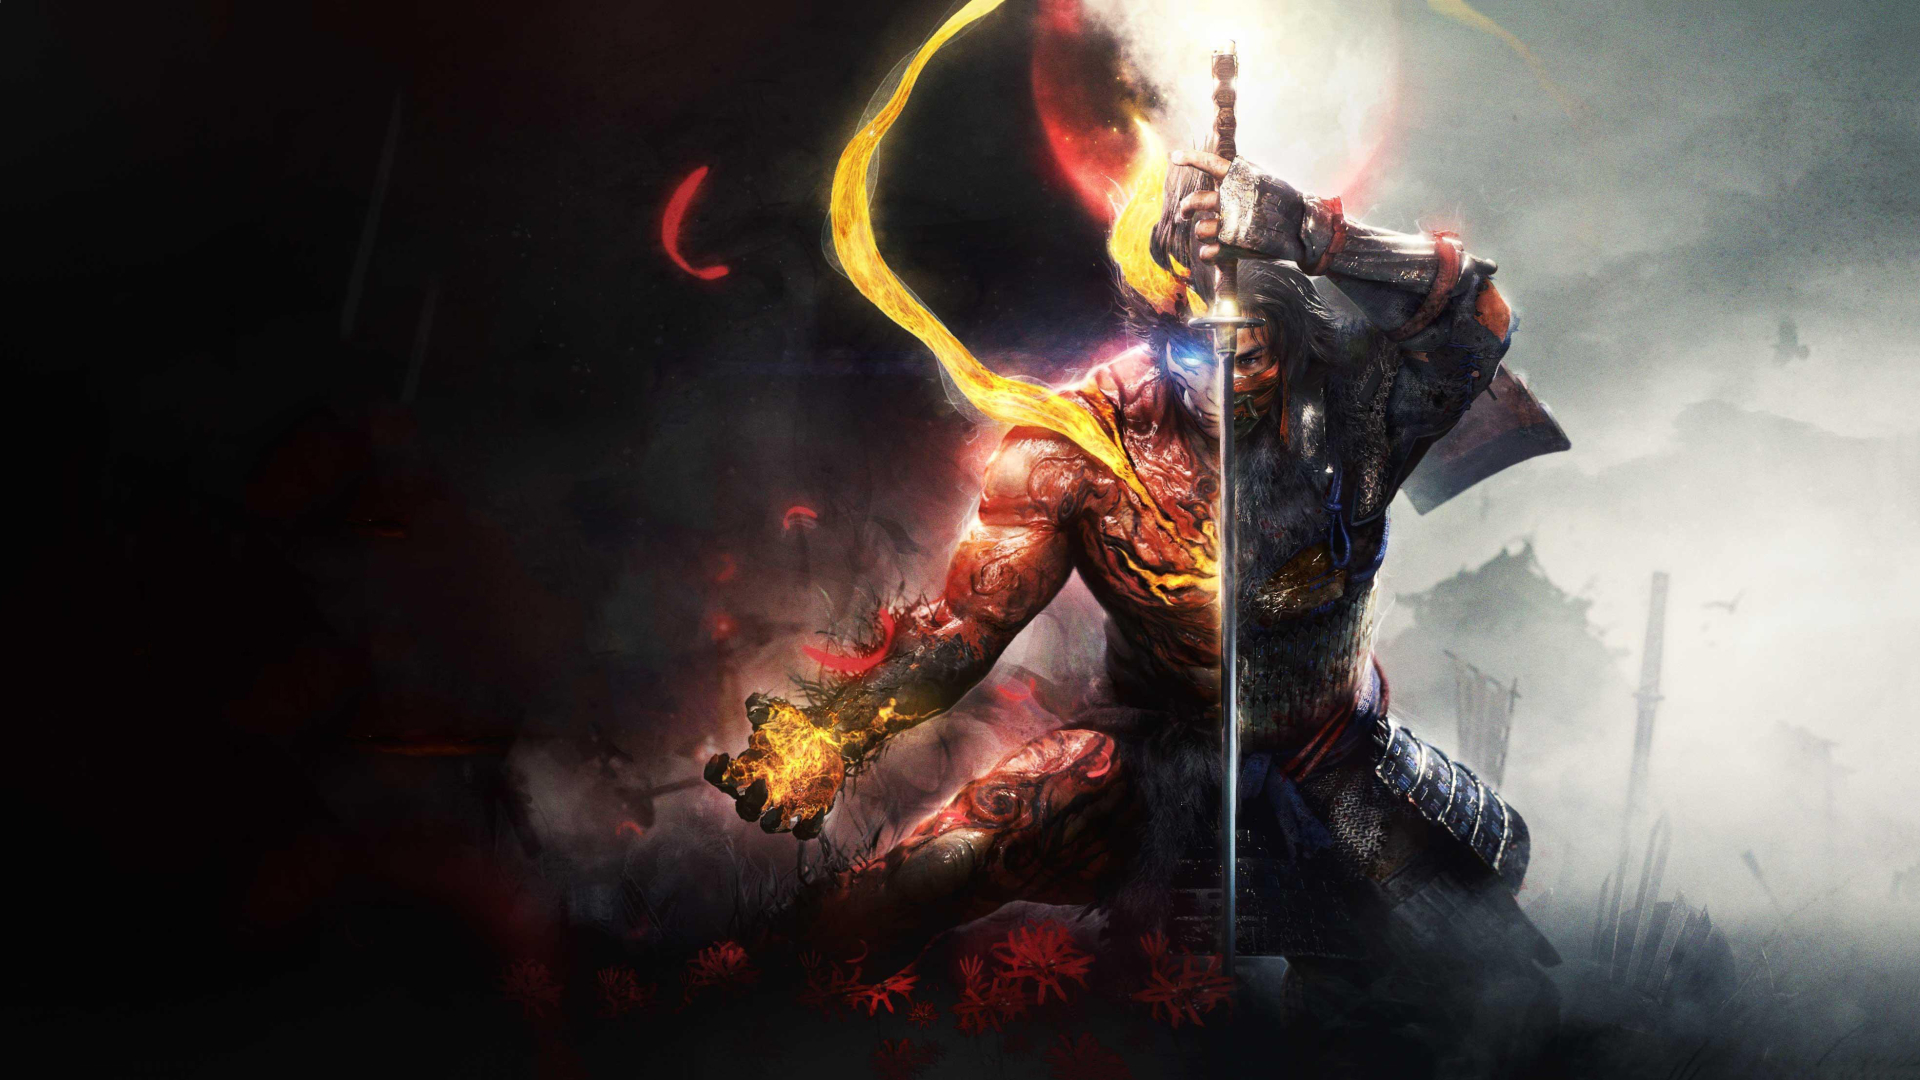 1920x1080 4k Nioh 2 1080p Laptop Full Hd Wallpaper Hd Games 4k Wallpapers Images Photos And Background Wallpapers Den